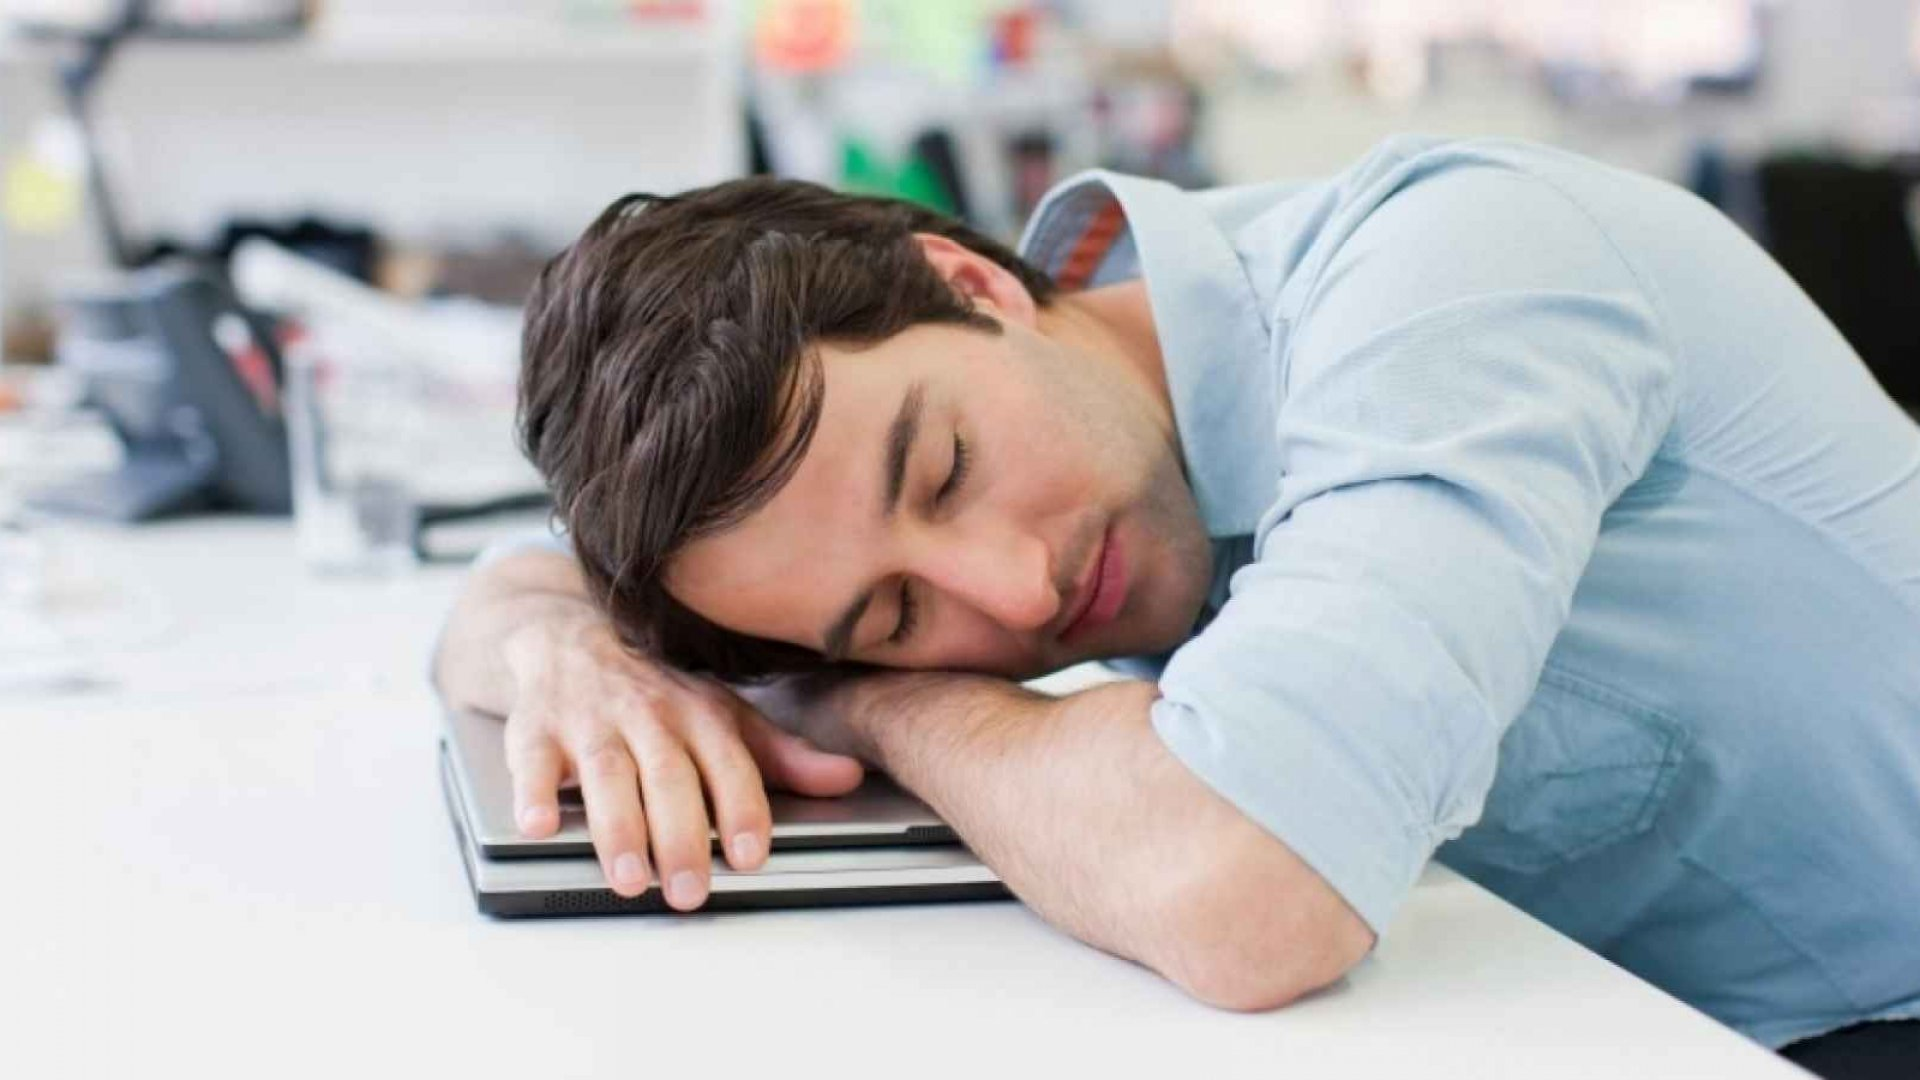 Yes, You Do Have Enough Space to Nap at Work